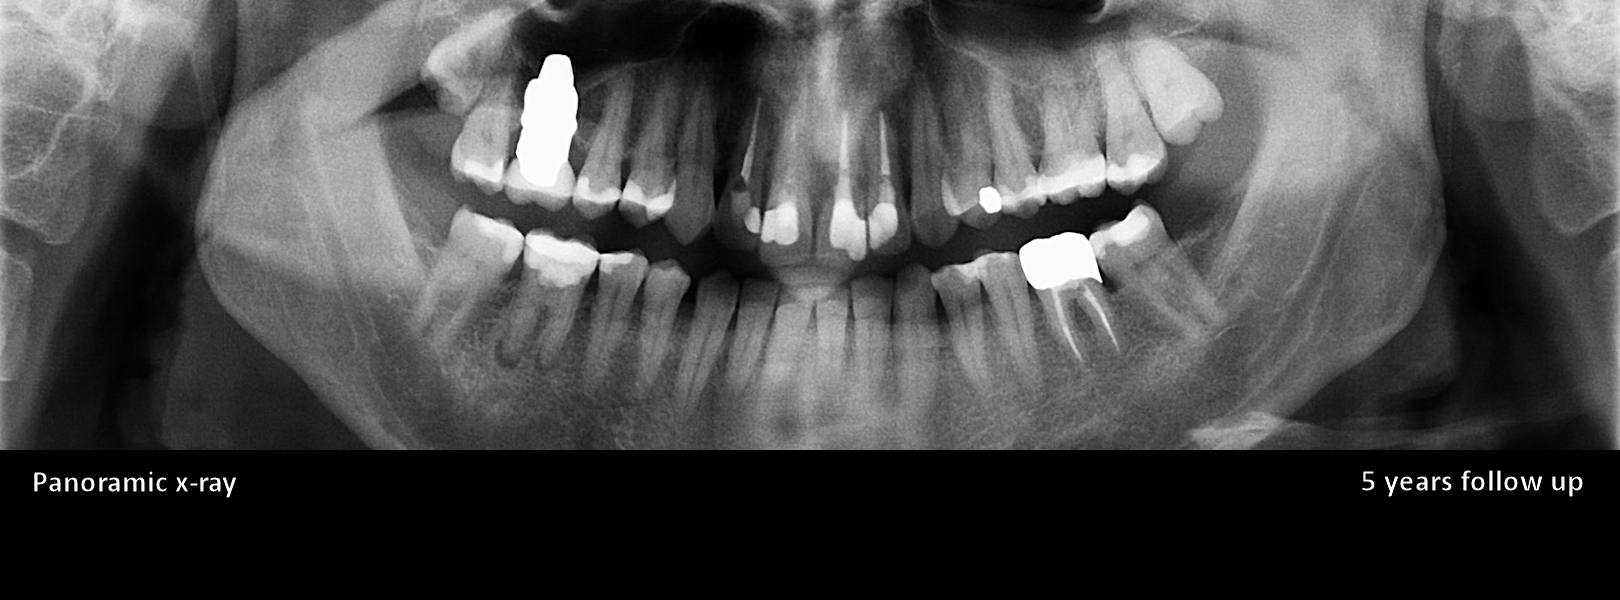 anatomic-ceramic-implant-upper-molar-panoramic-x-ray-5-years